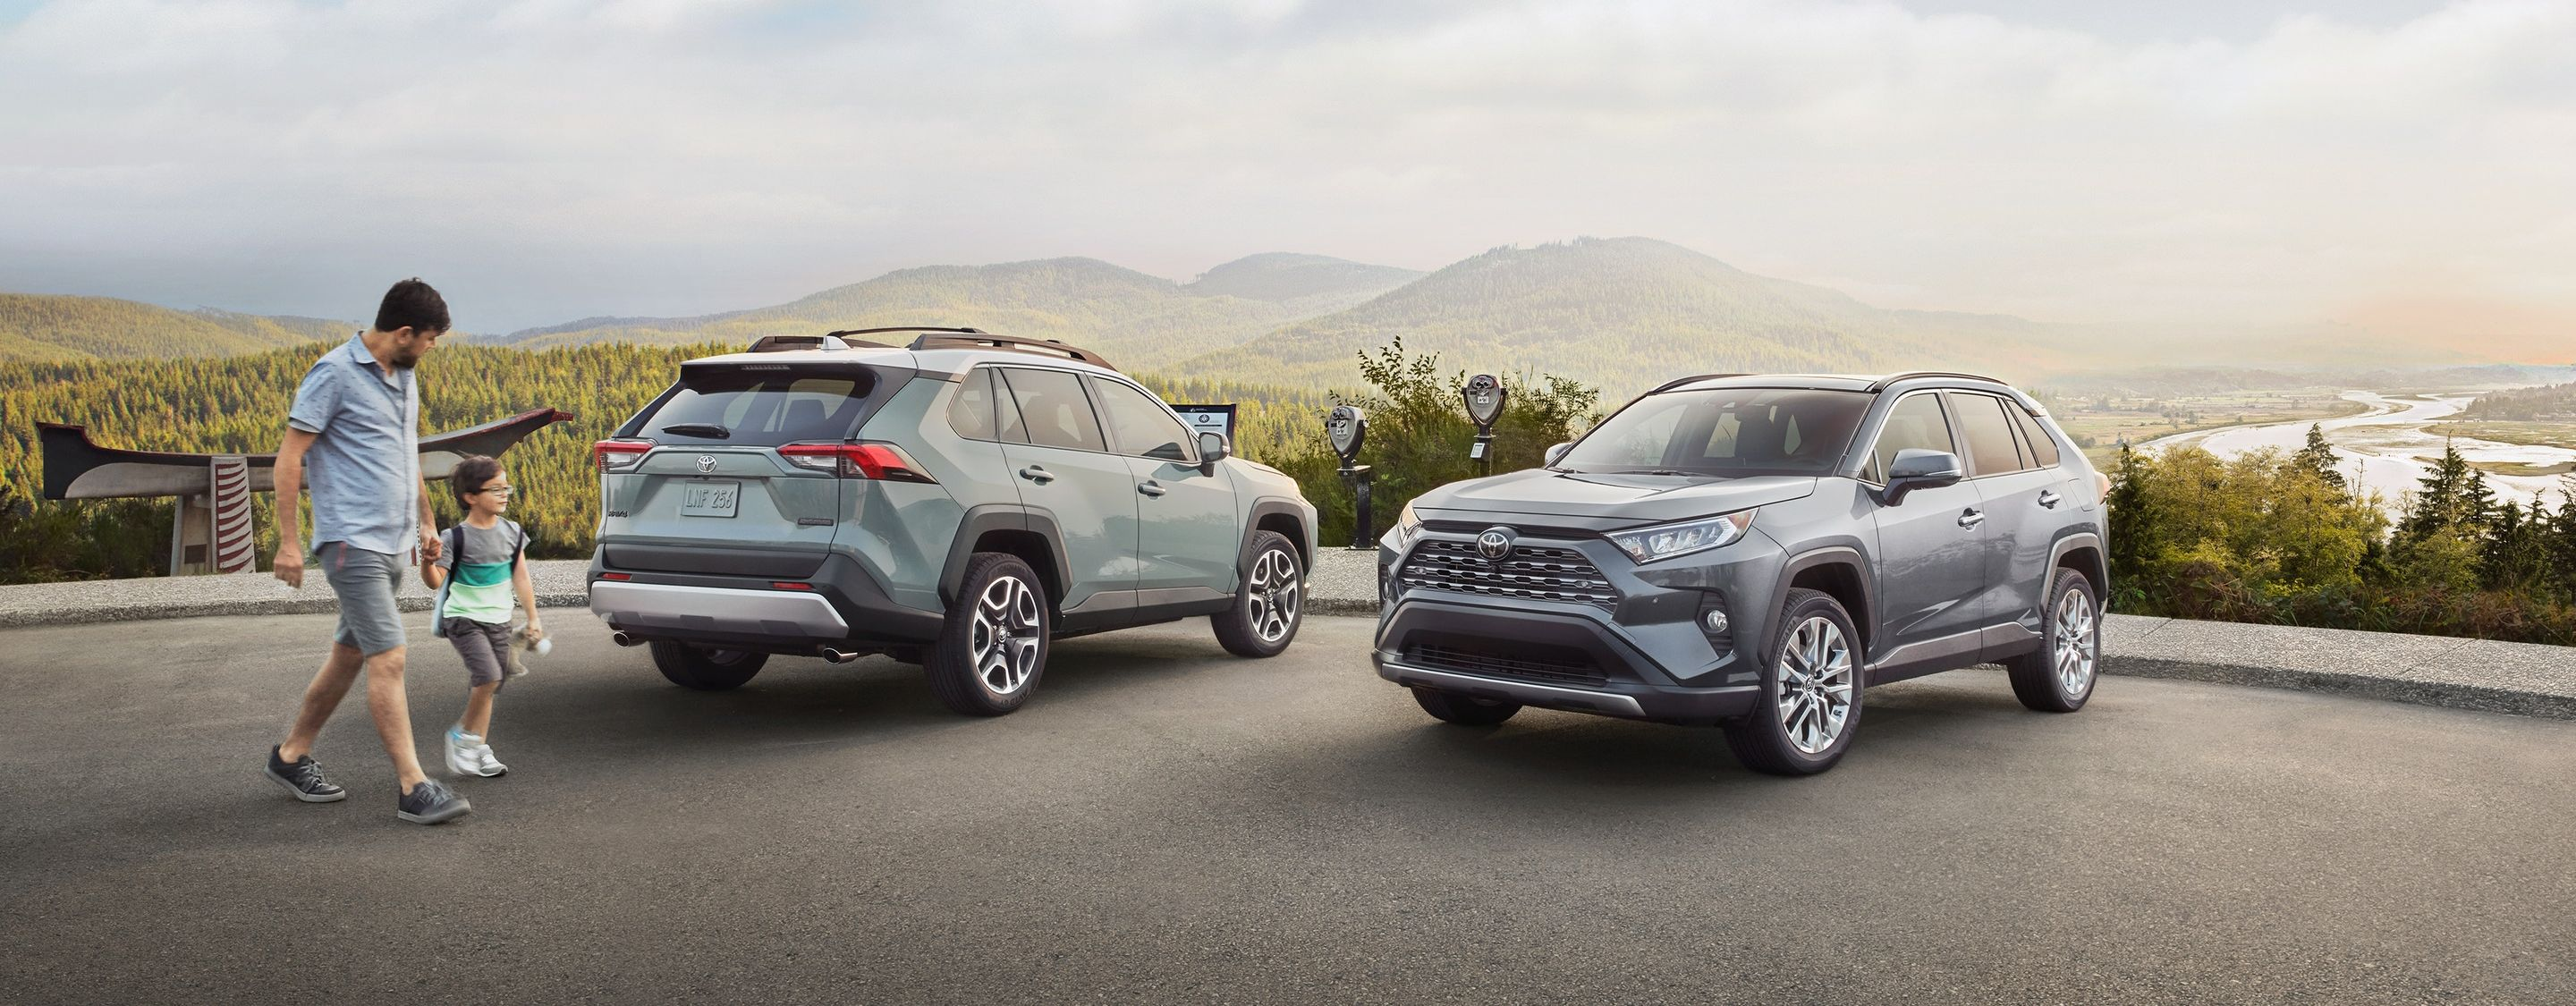 2019 Toyota RAV4 Leasing near Brighton, MI